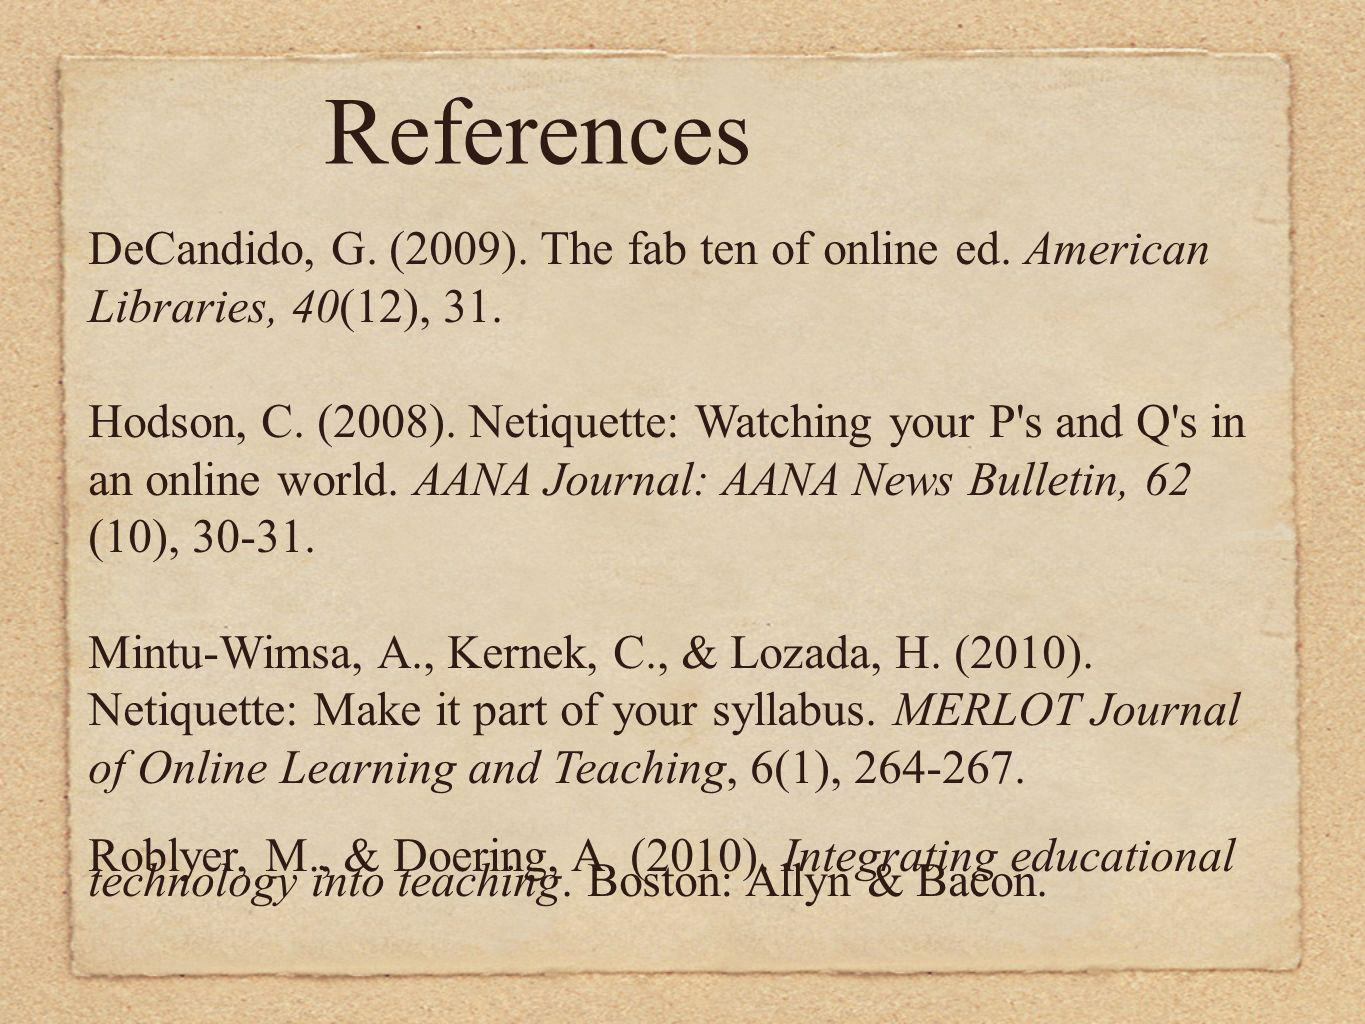 References DeCandido, G. (2009). The fab ten of online ed. American Libraries, 40(12), 31.